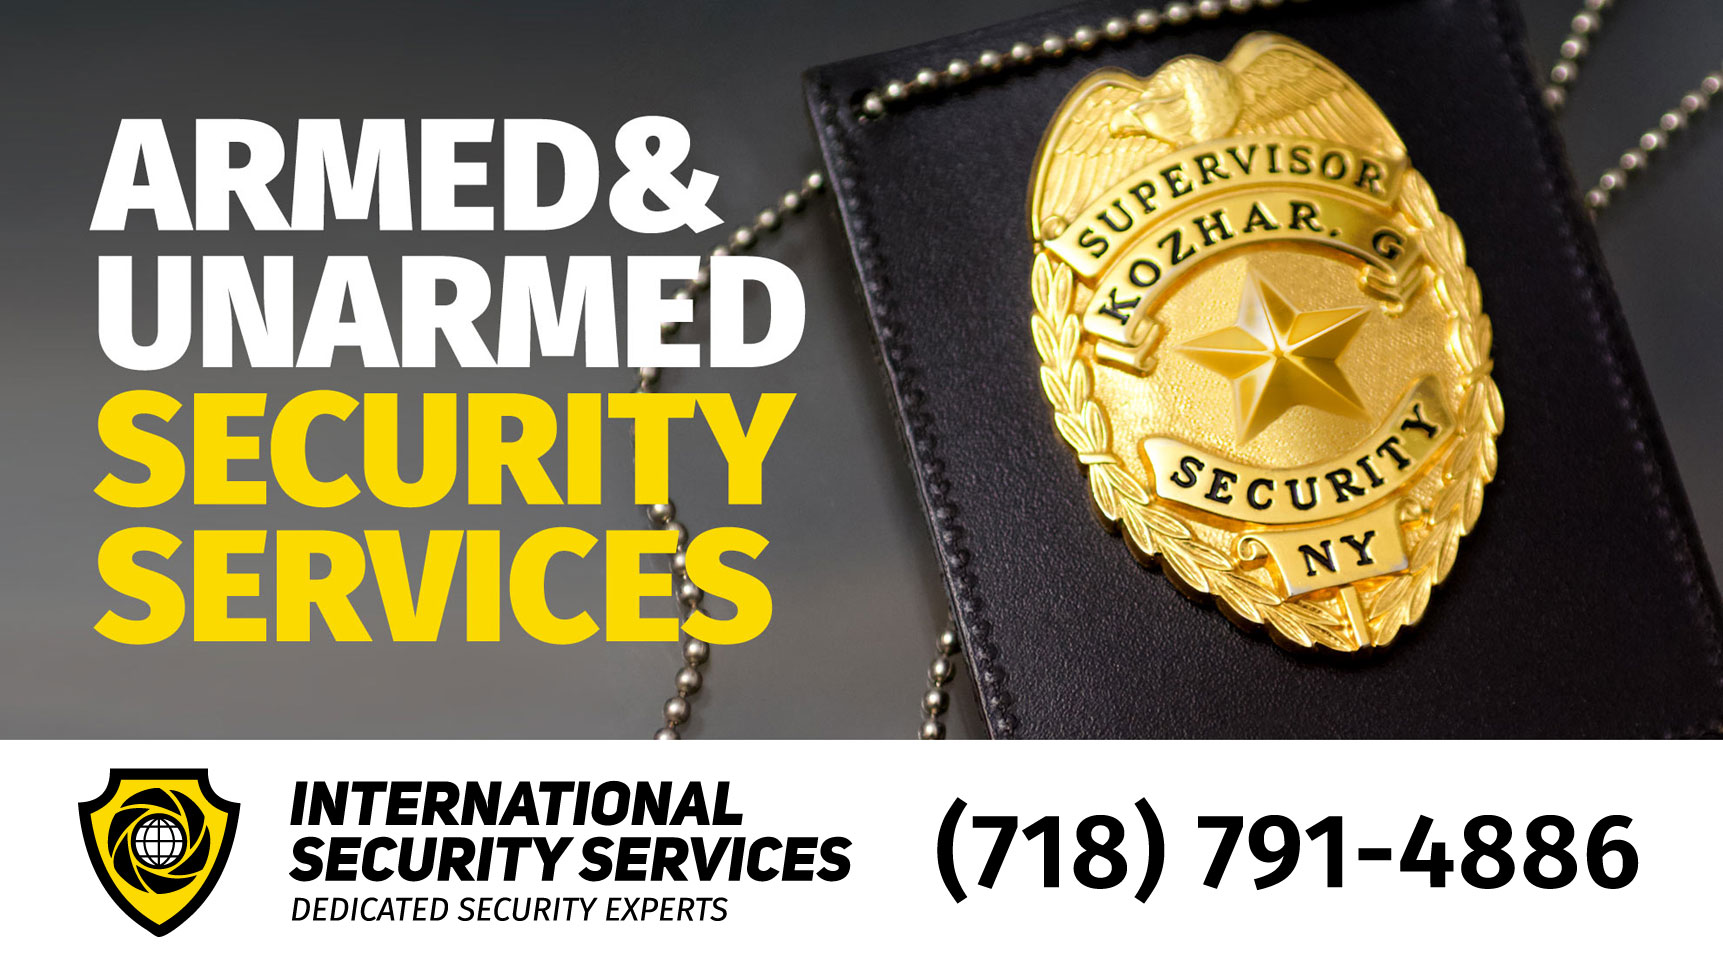 International Security Services is leveraging technology as an essential component of its superior security strategy